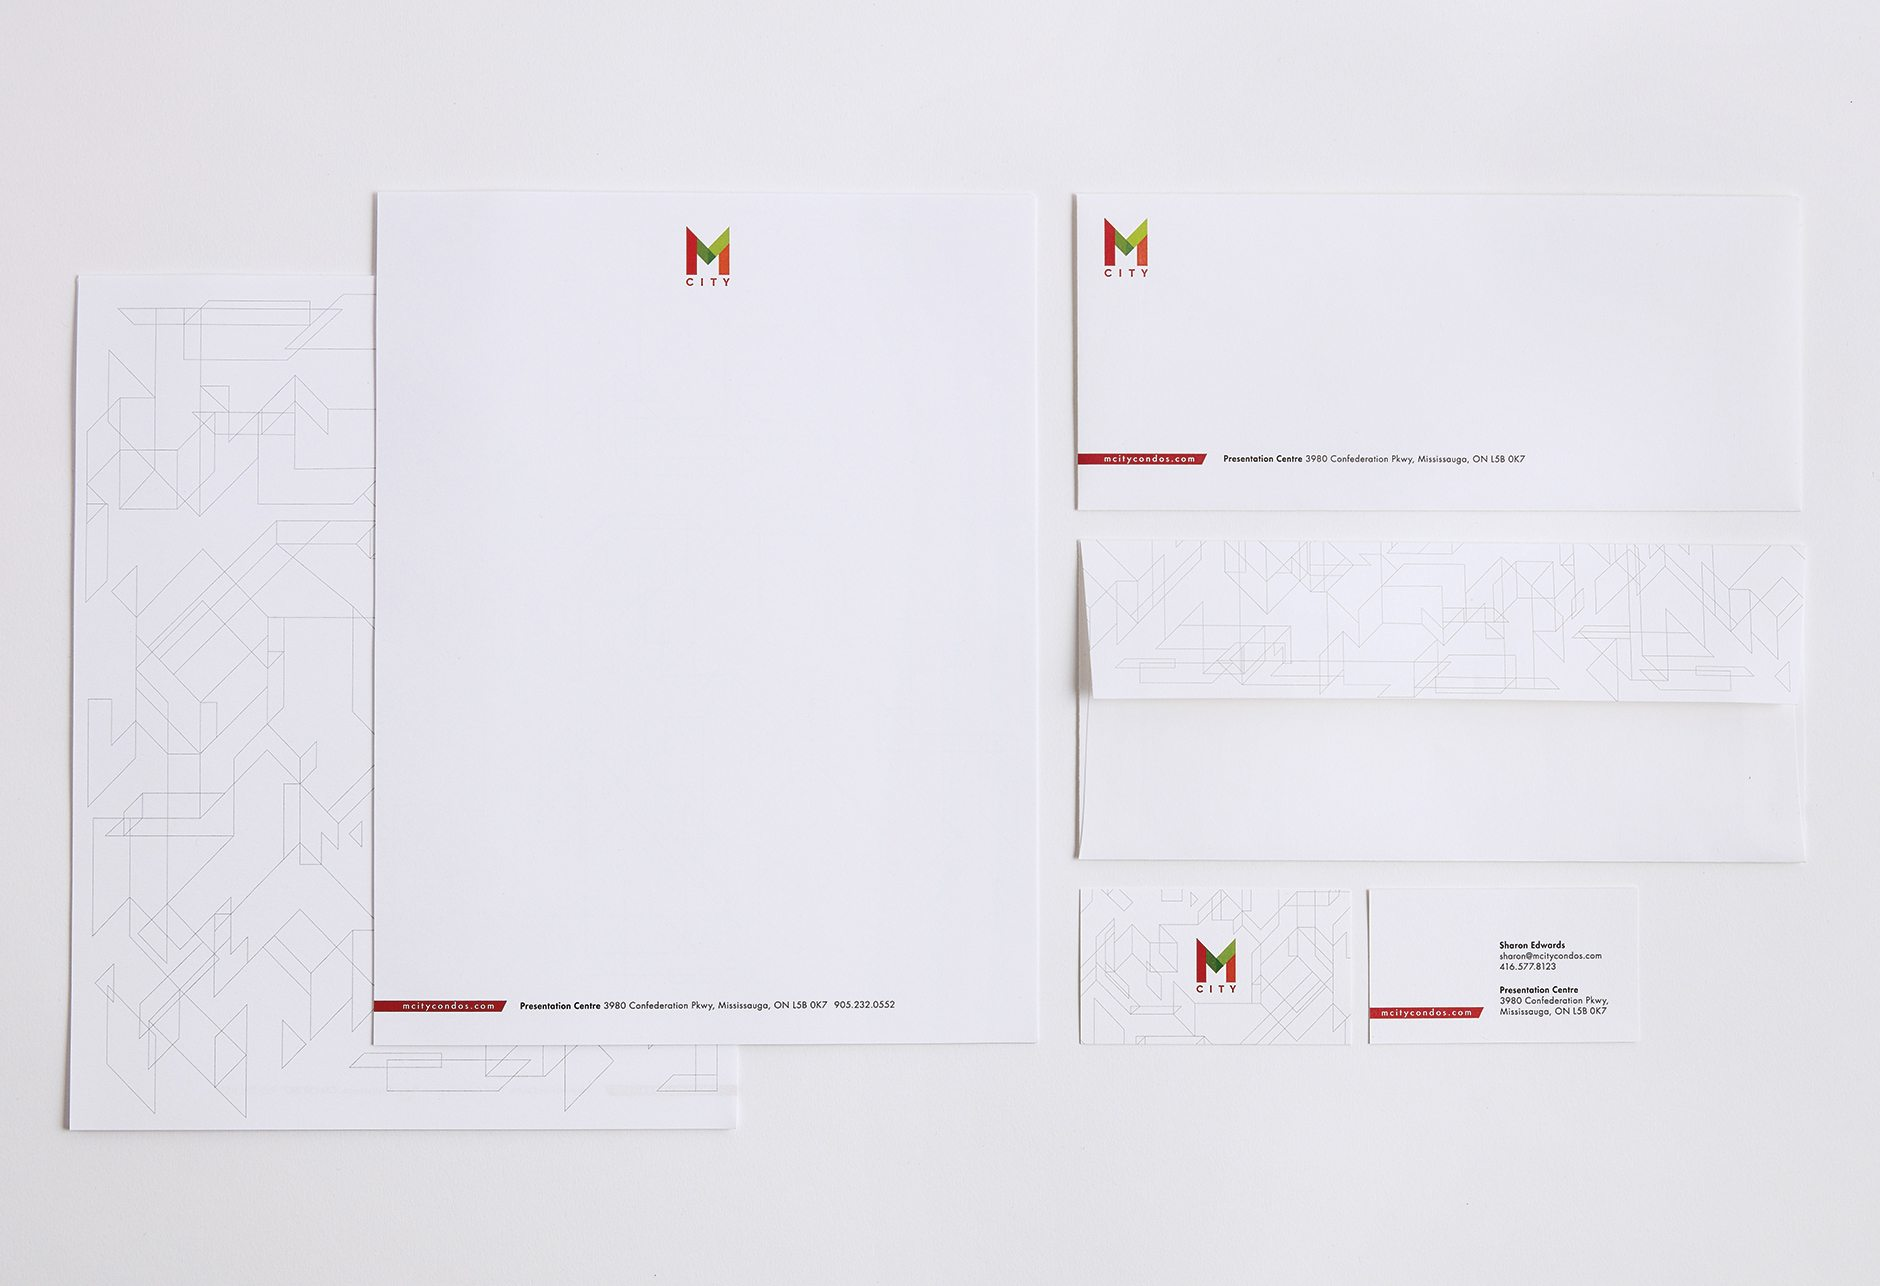 mcity stationery